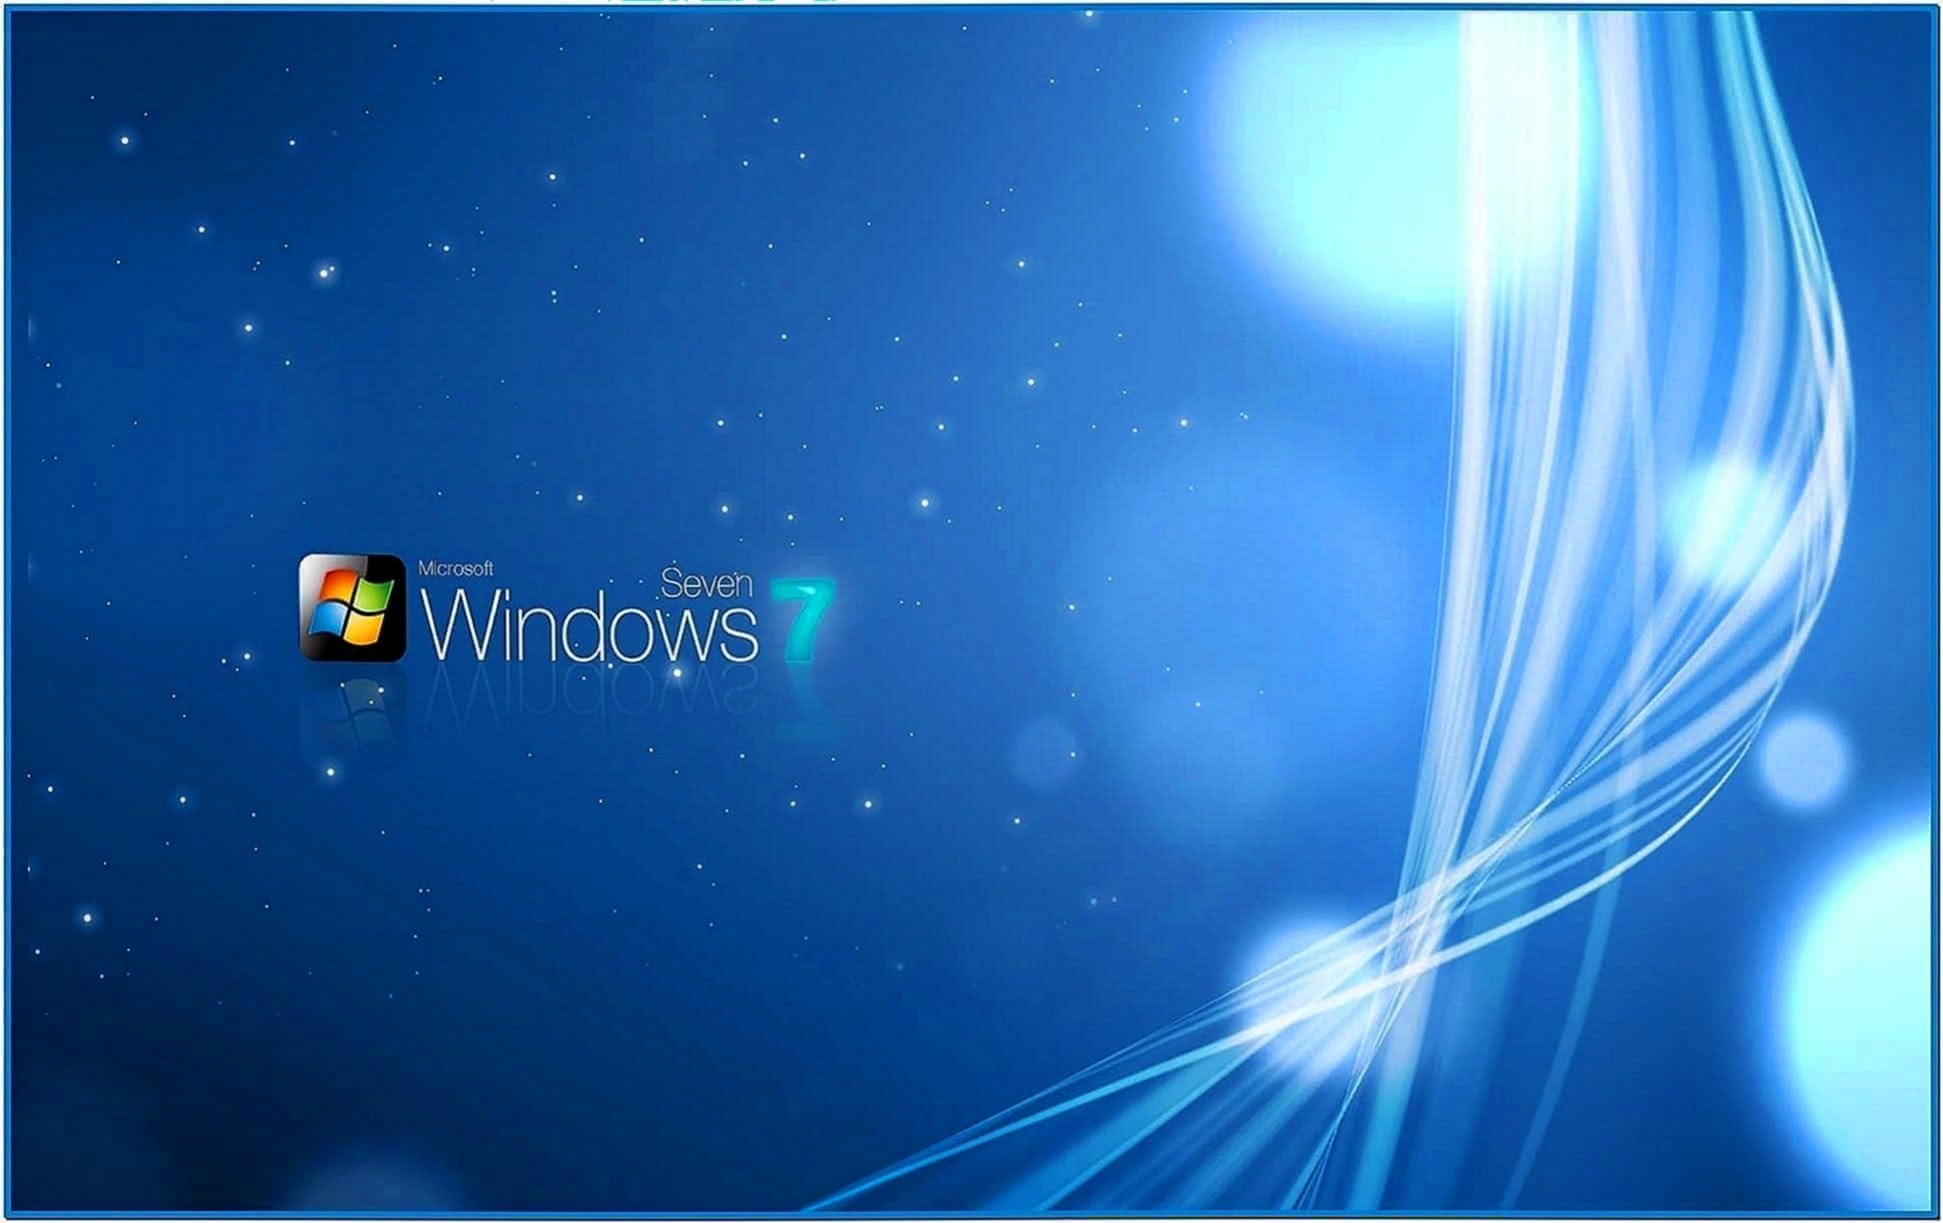 Screensavers Windows 7 Ultimate 64bit